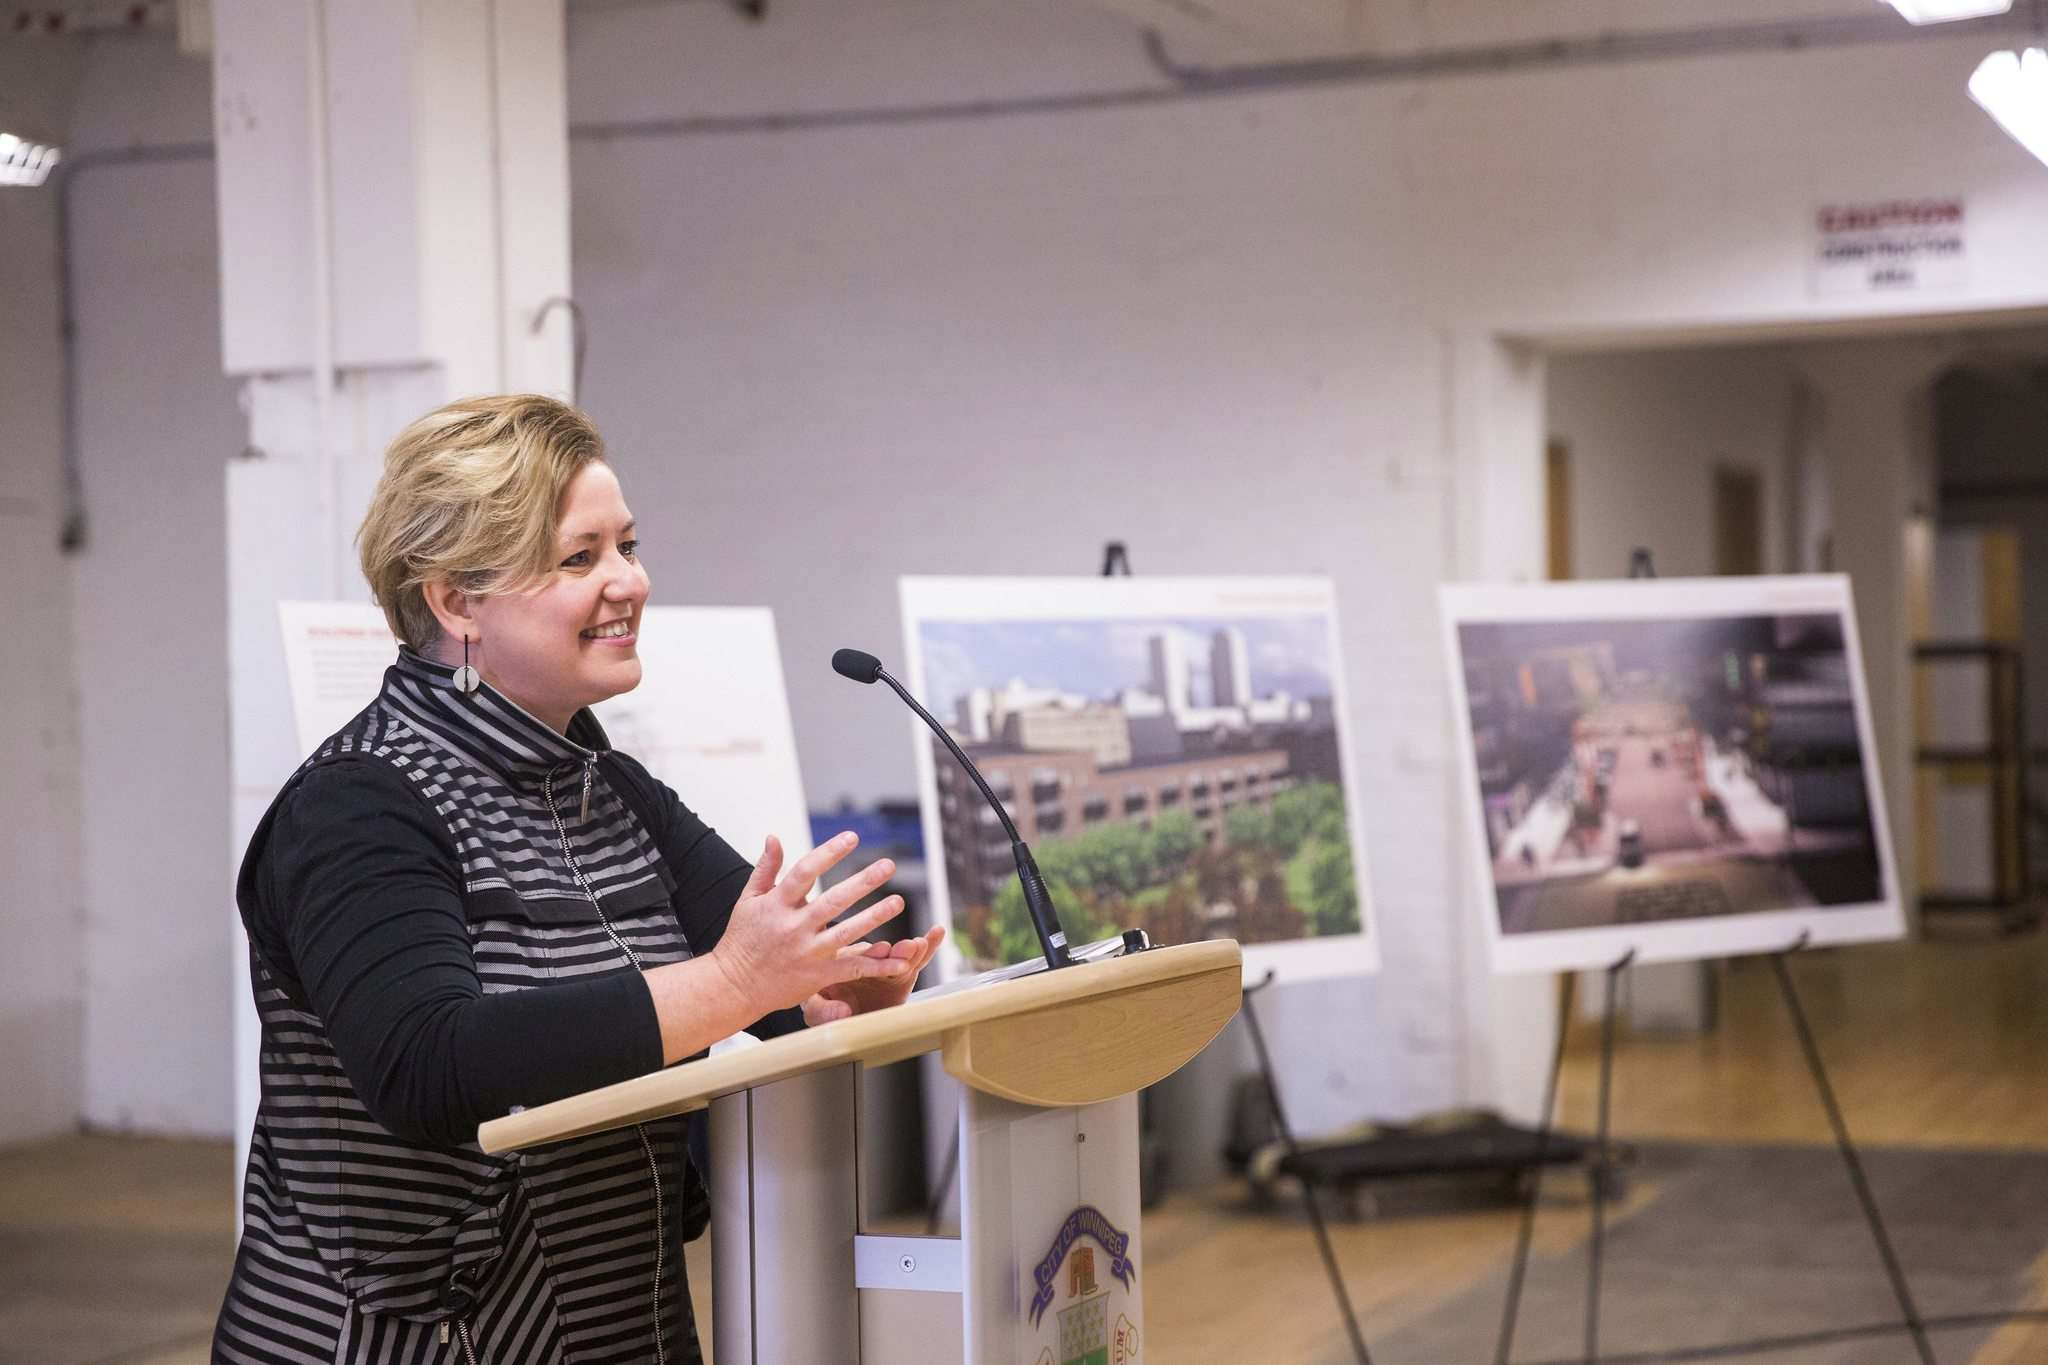 CentreVenture president and CEO Angela Mathieson said the agency hopes to see 500 new residents move into the neighbourhood over the next 10 years. (Mikaela MacKenzie / Winnipeg Free Press)</p>